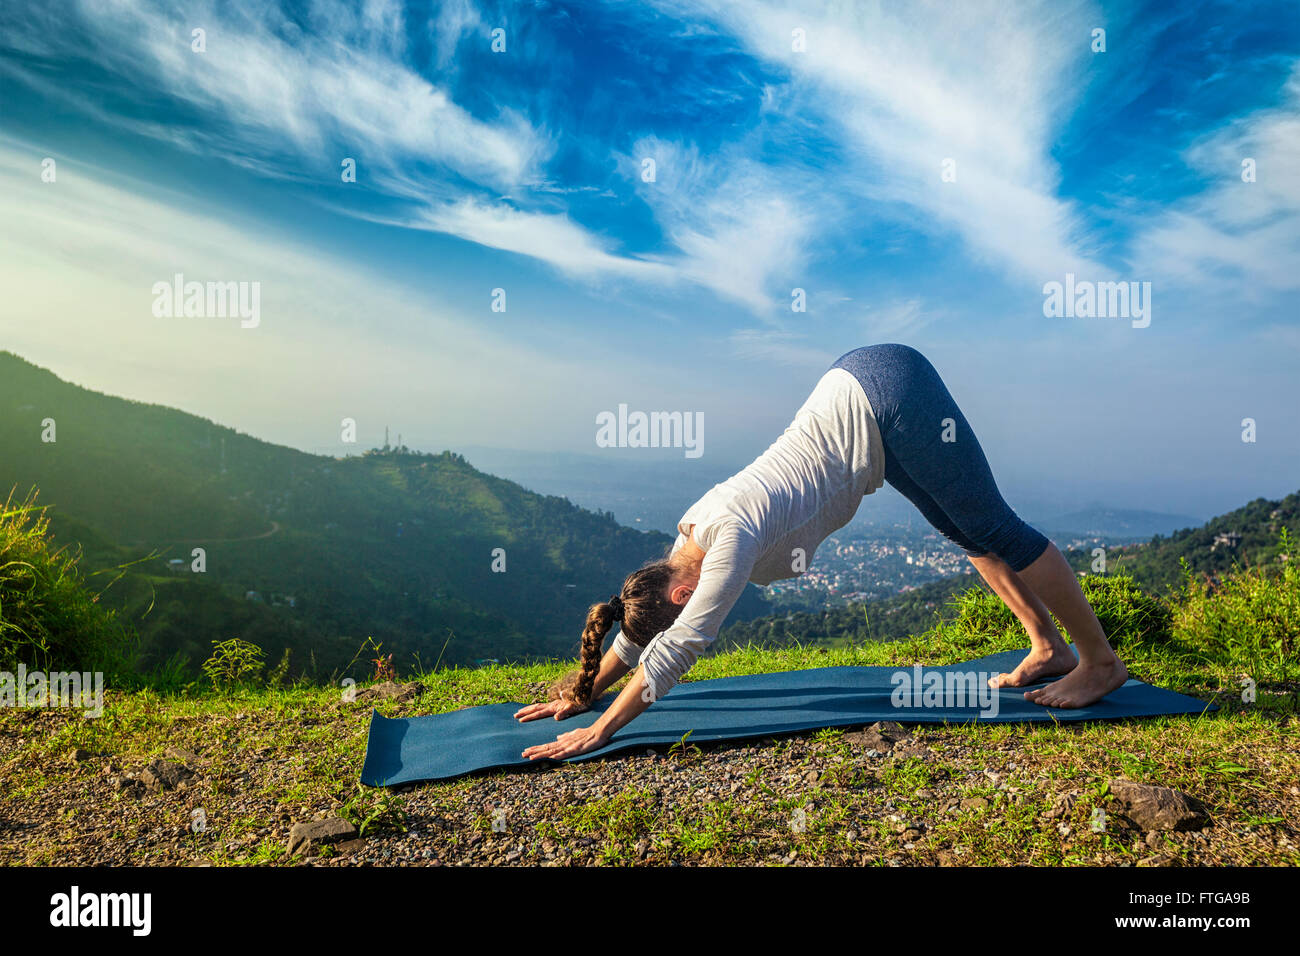 Woman doing yoga oudoors in mountains - Stock Image